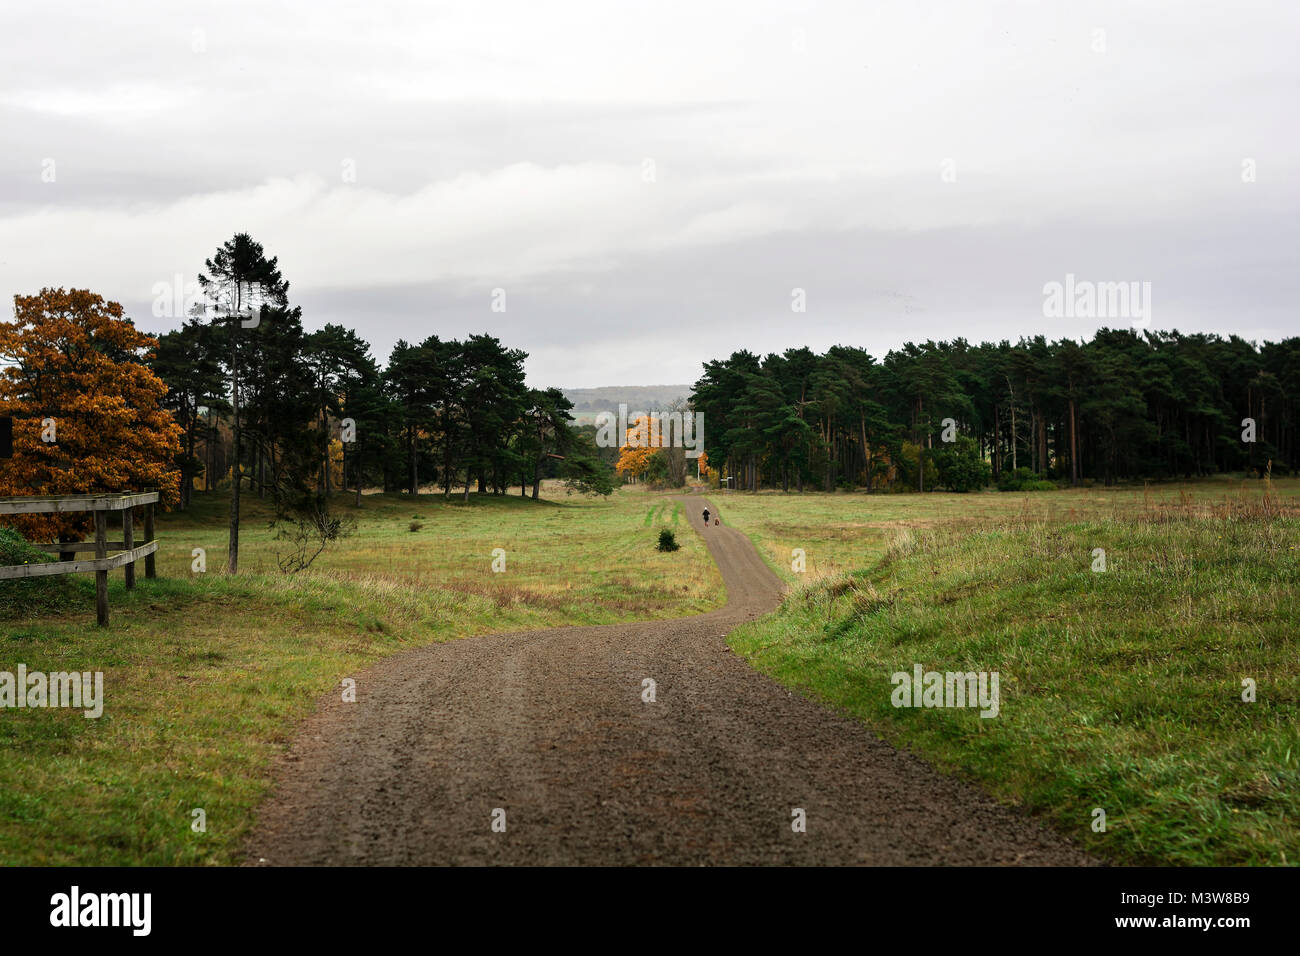 Pathway at Swedish countryside with people walking - Stock Image